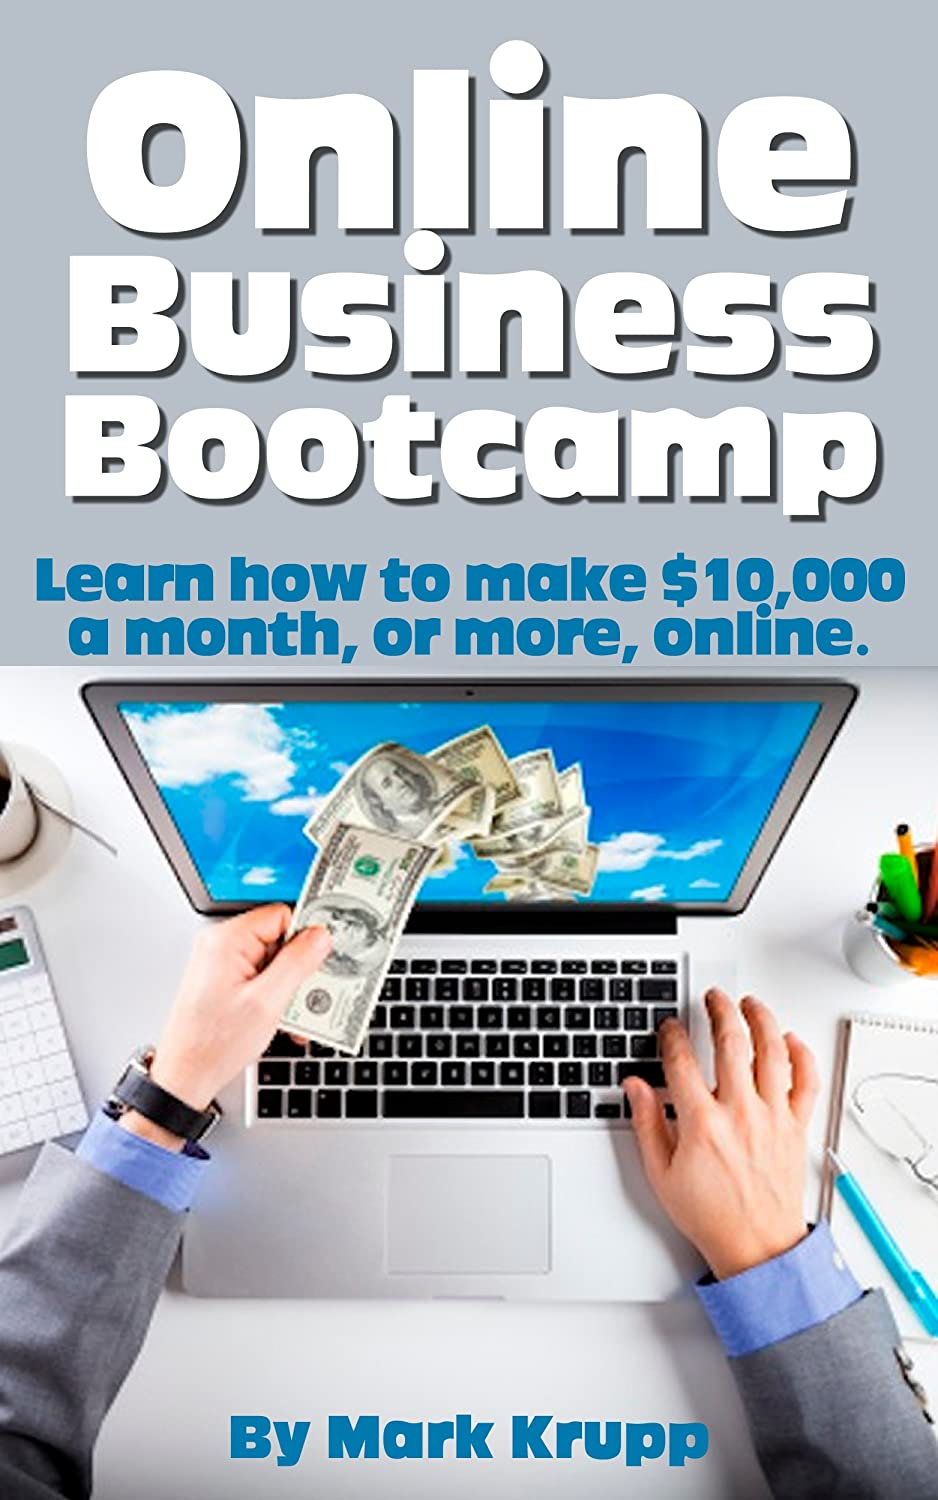 Online Business Bootcamp by Mark Krupp